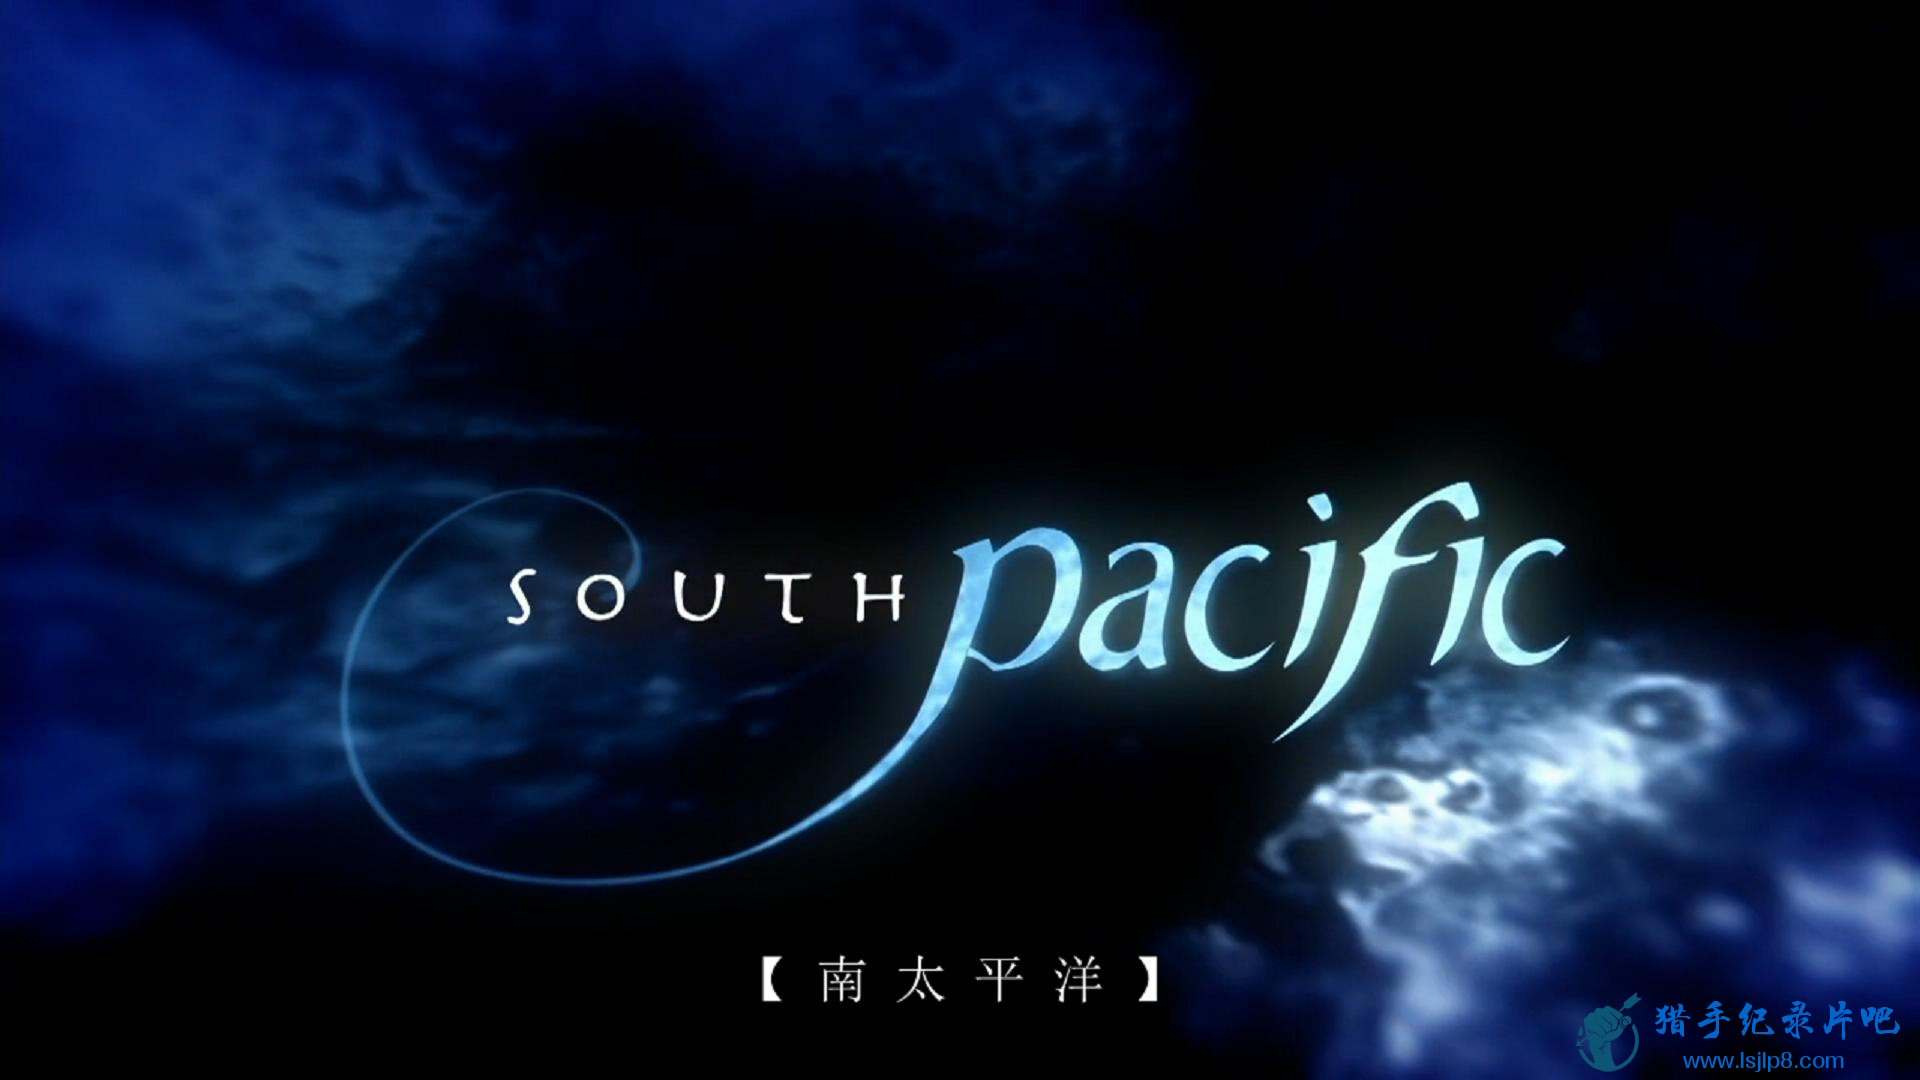 South.Pacific.2009.EP01.BluRay.1080p.DTSHD.x264-CHD_20180309220453.JPG